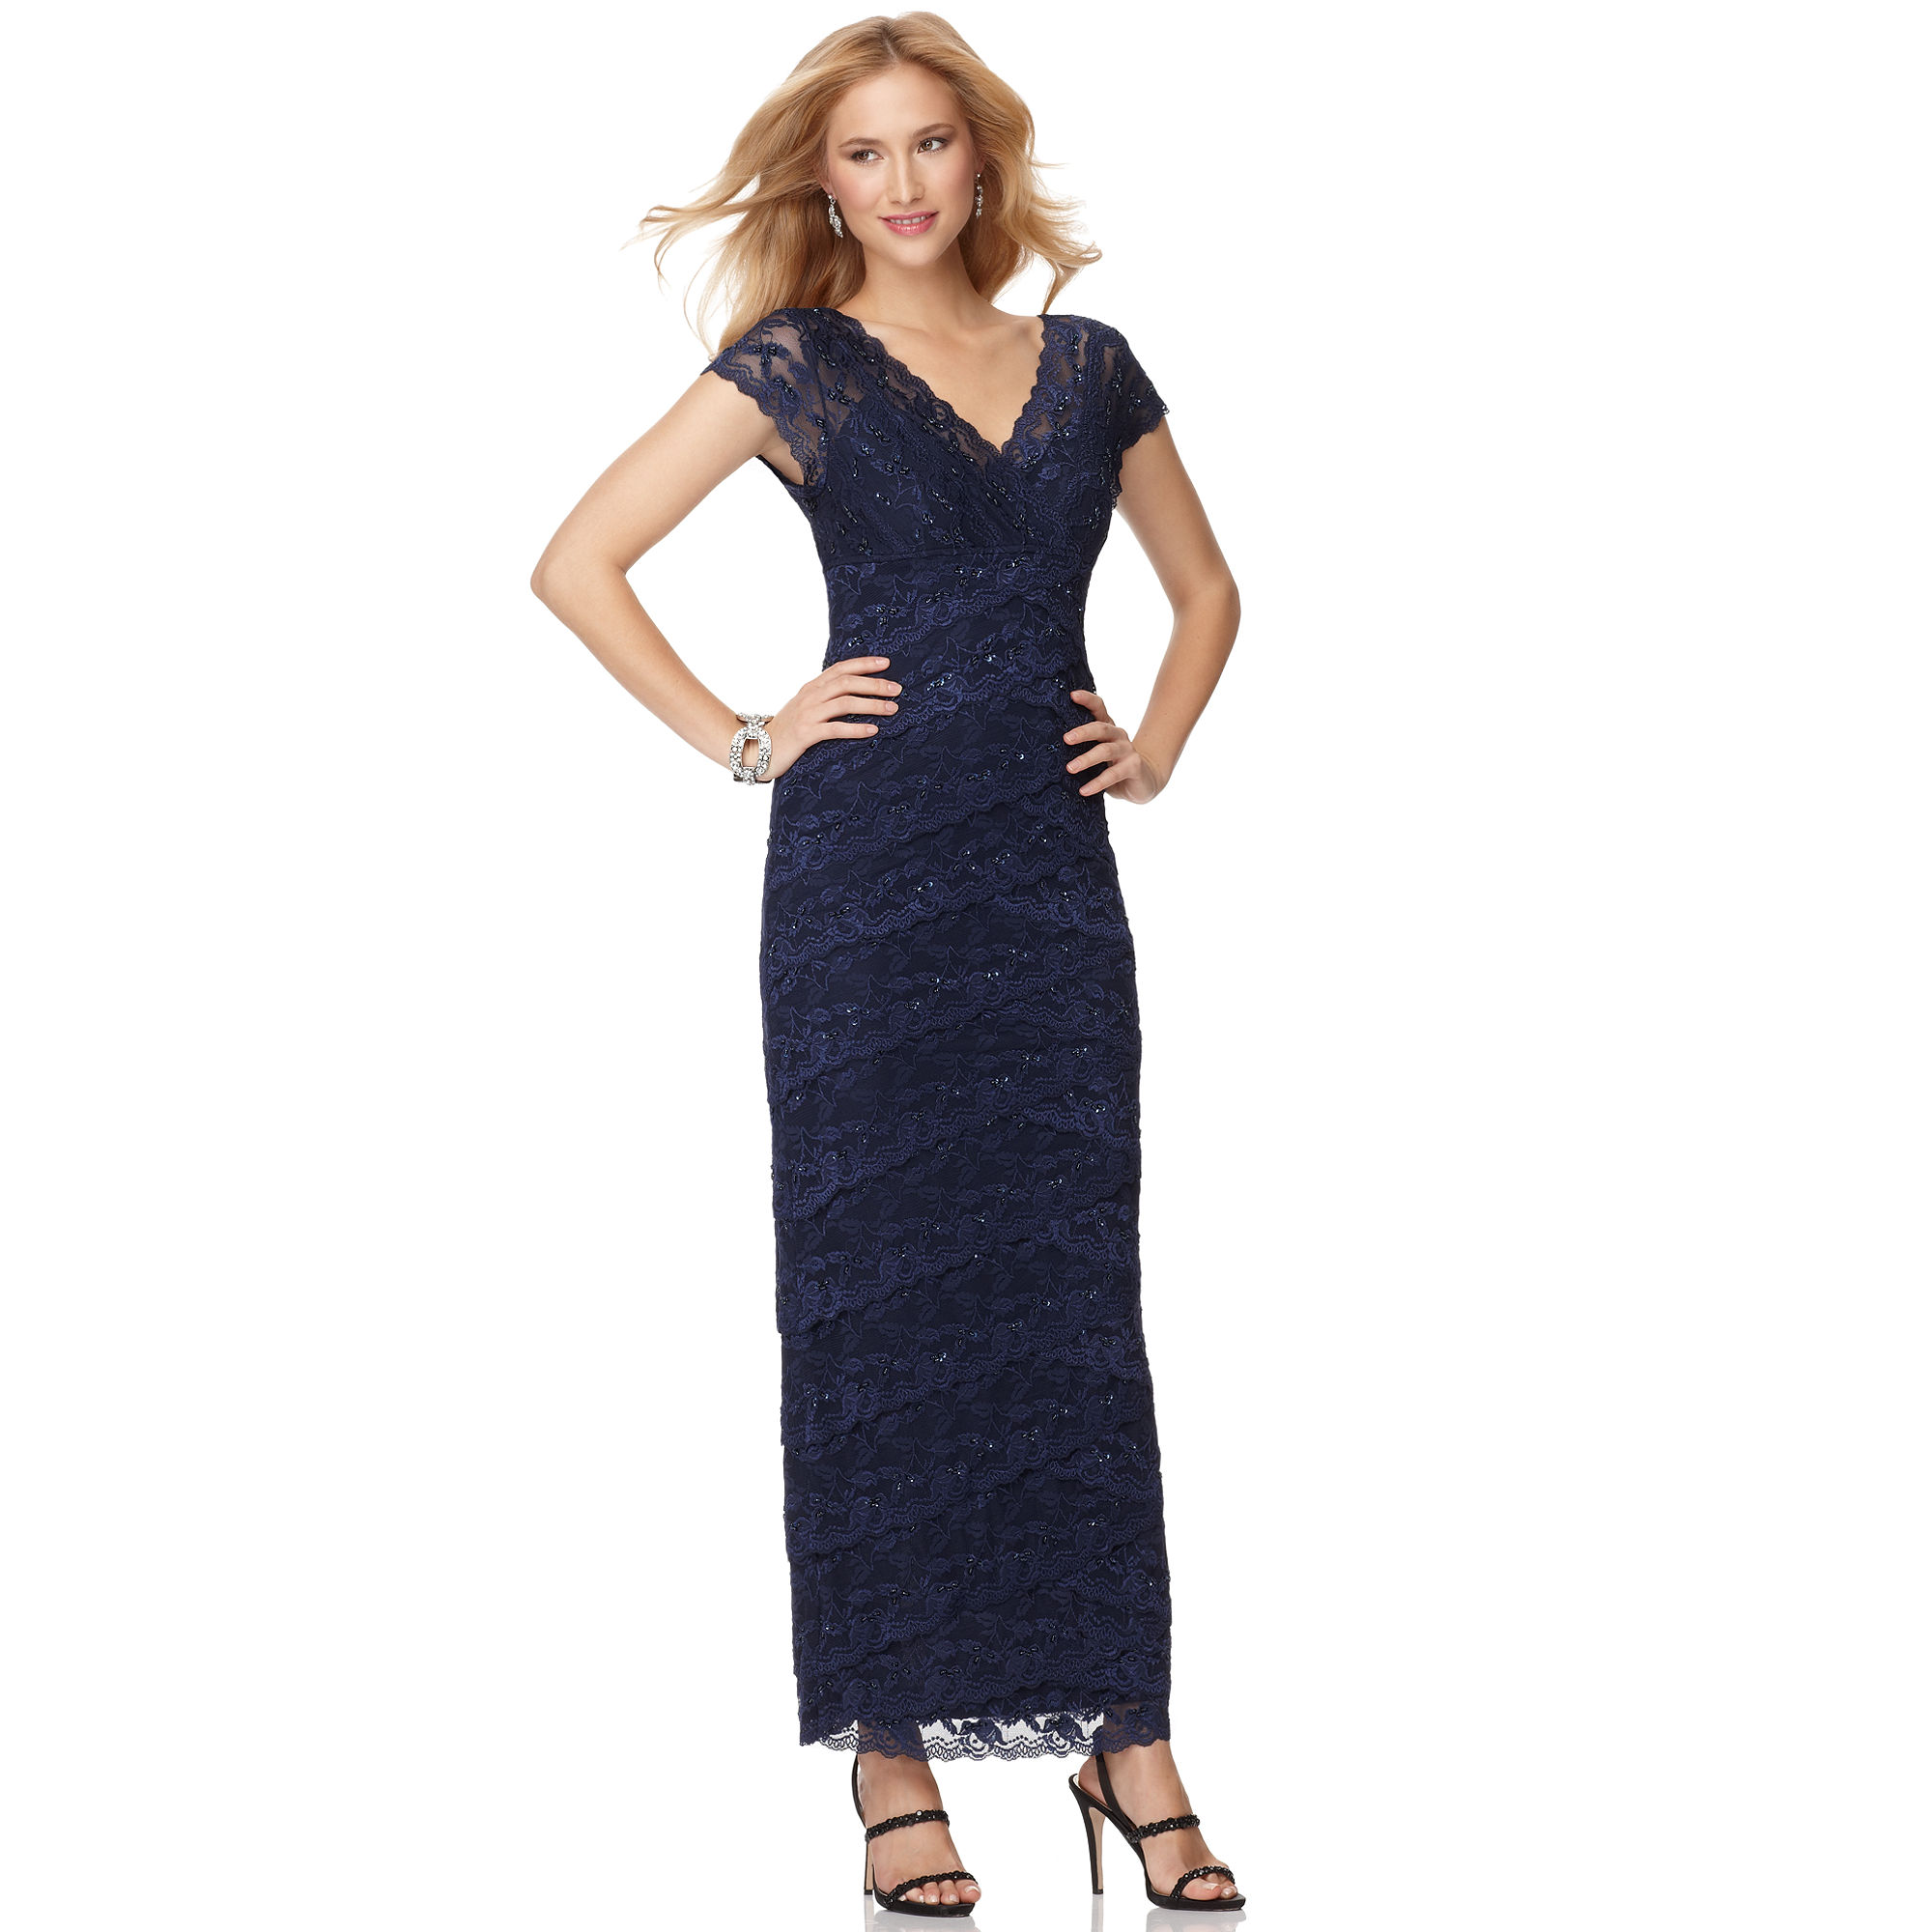 Lyst - Marina Short Sleeve Vneck Beaded Lace Evening Gown in Blue